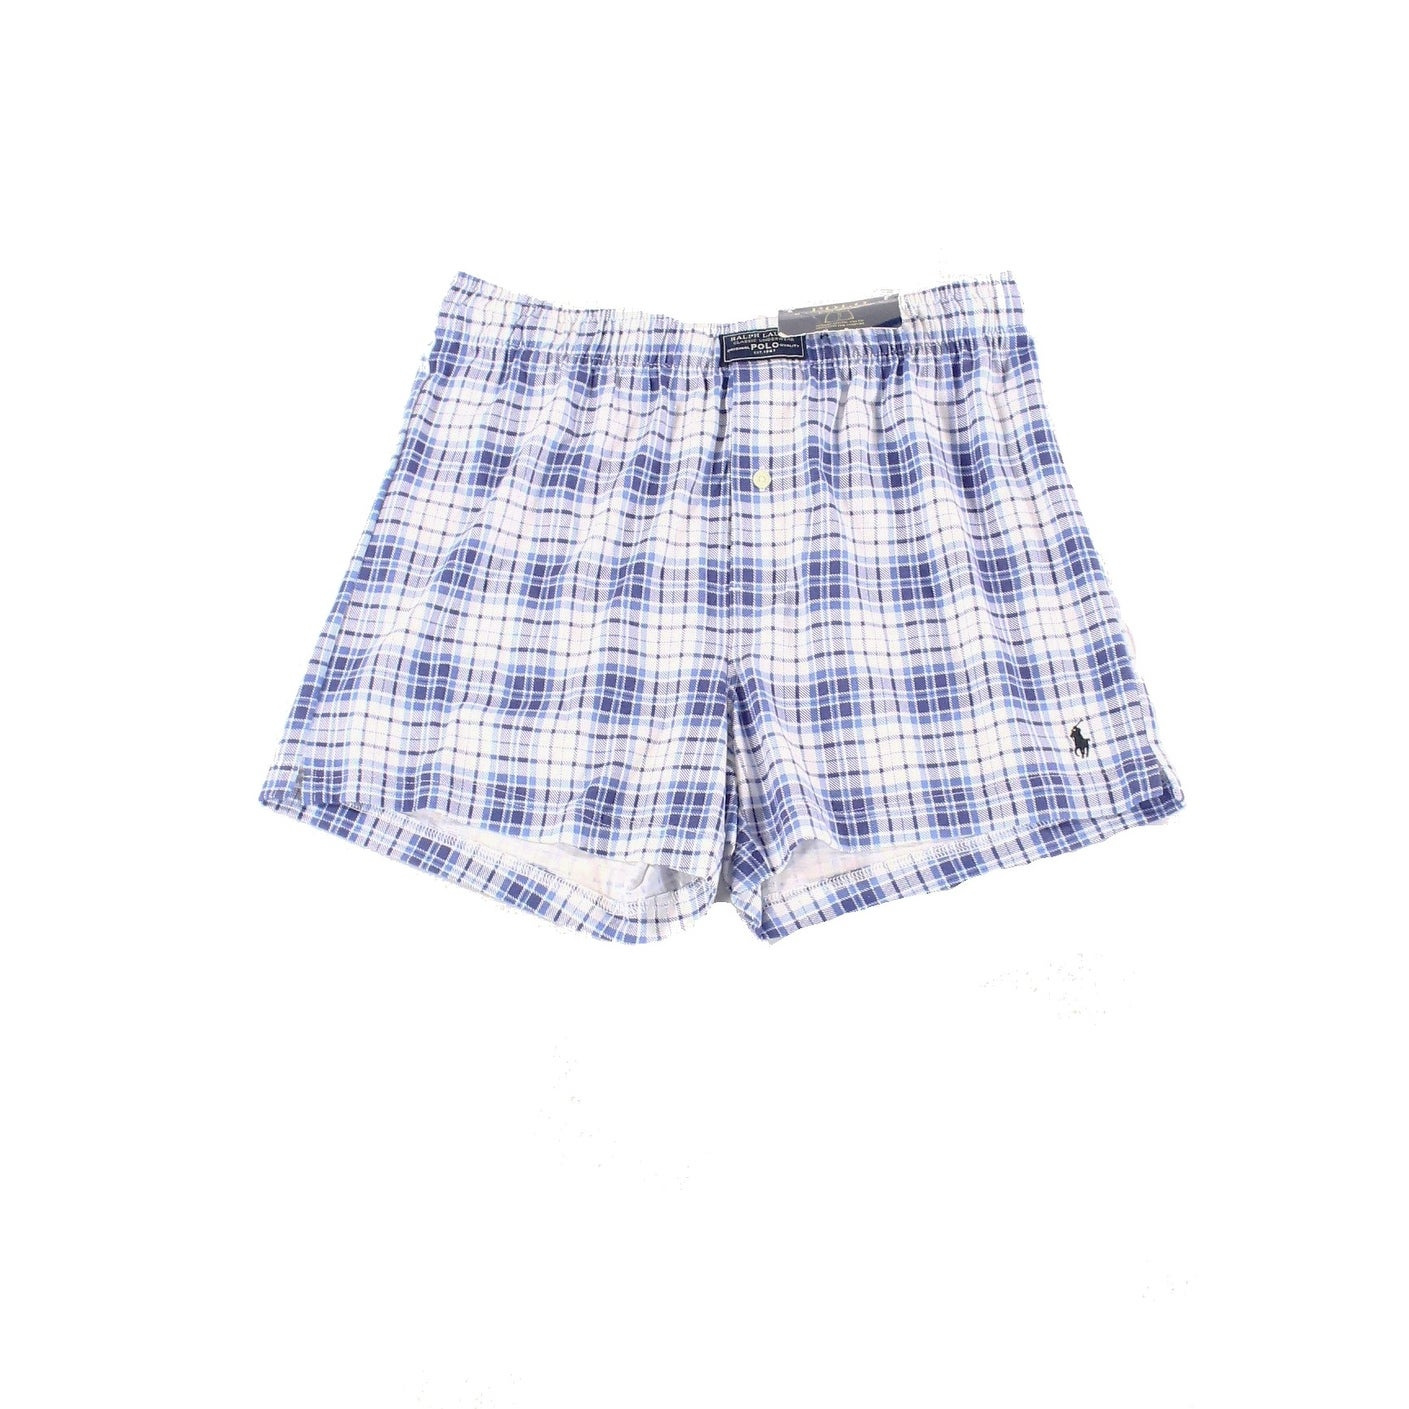 edcc3484c6f Polo Ralph Lauren Underwear | Find Great Men's Clothing Deals Shopping at  Overstock